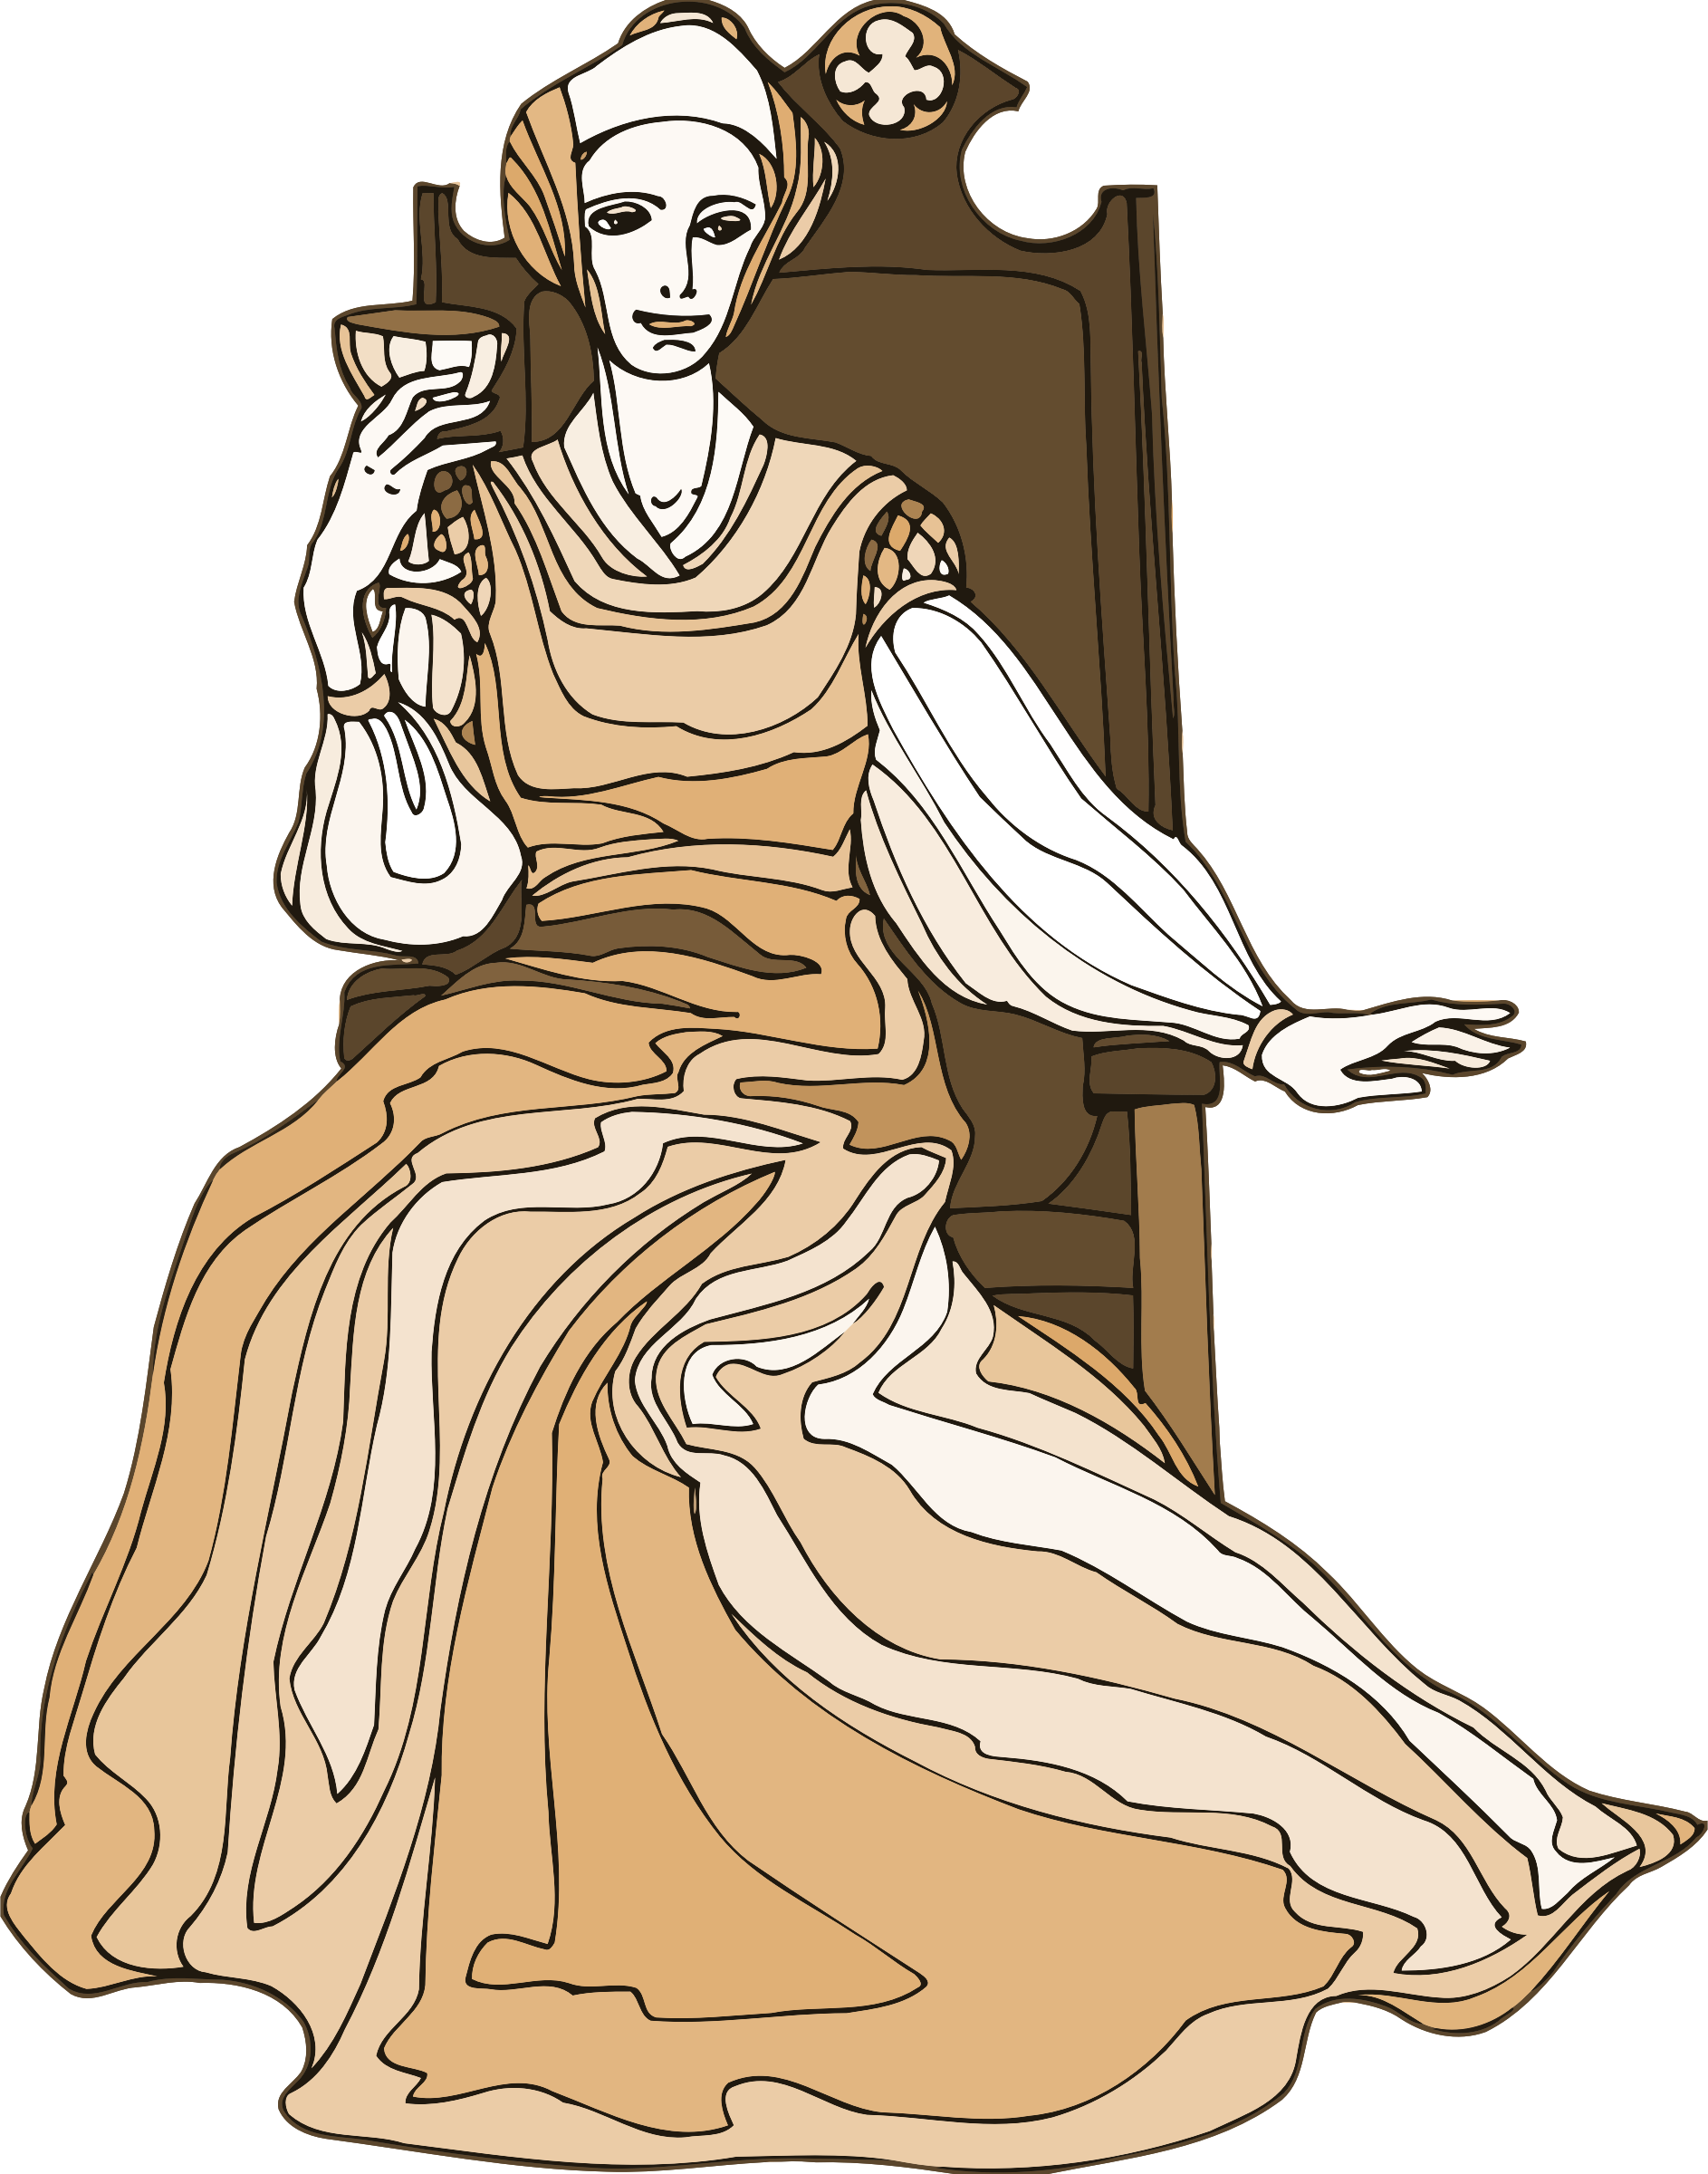 character analysis of queen gertrude of hamlet Polonius character analysis polonius described as: self-assured, cynical, self-centred let his queen mother all alone entreat him to show his griefs: polonius also sets up for hamlet to meet gertrude.